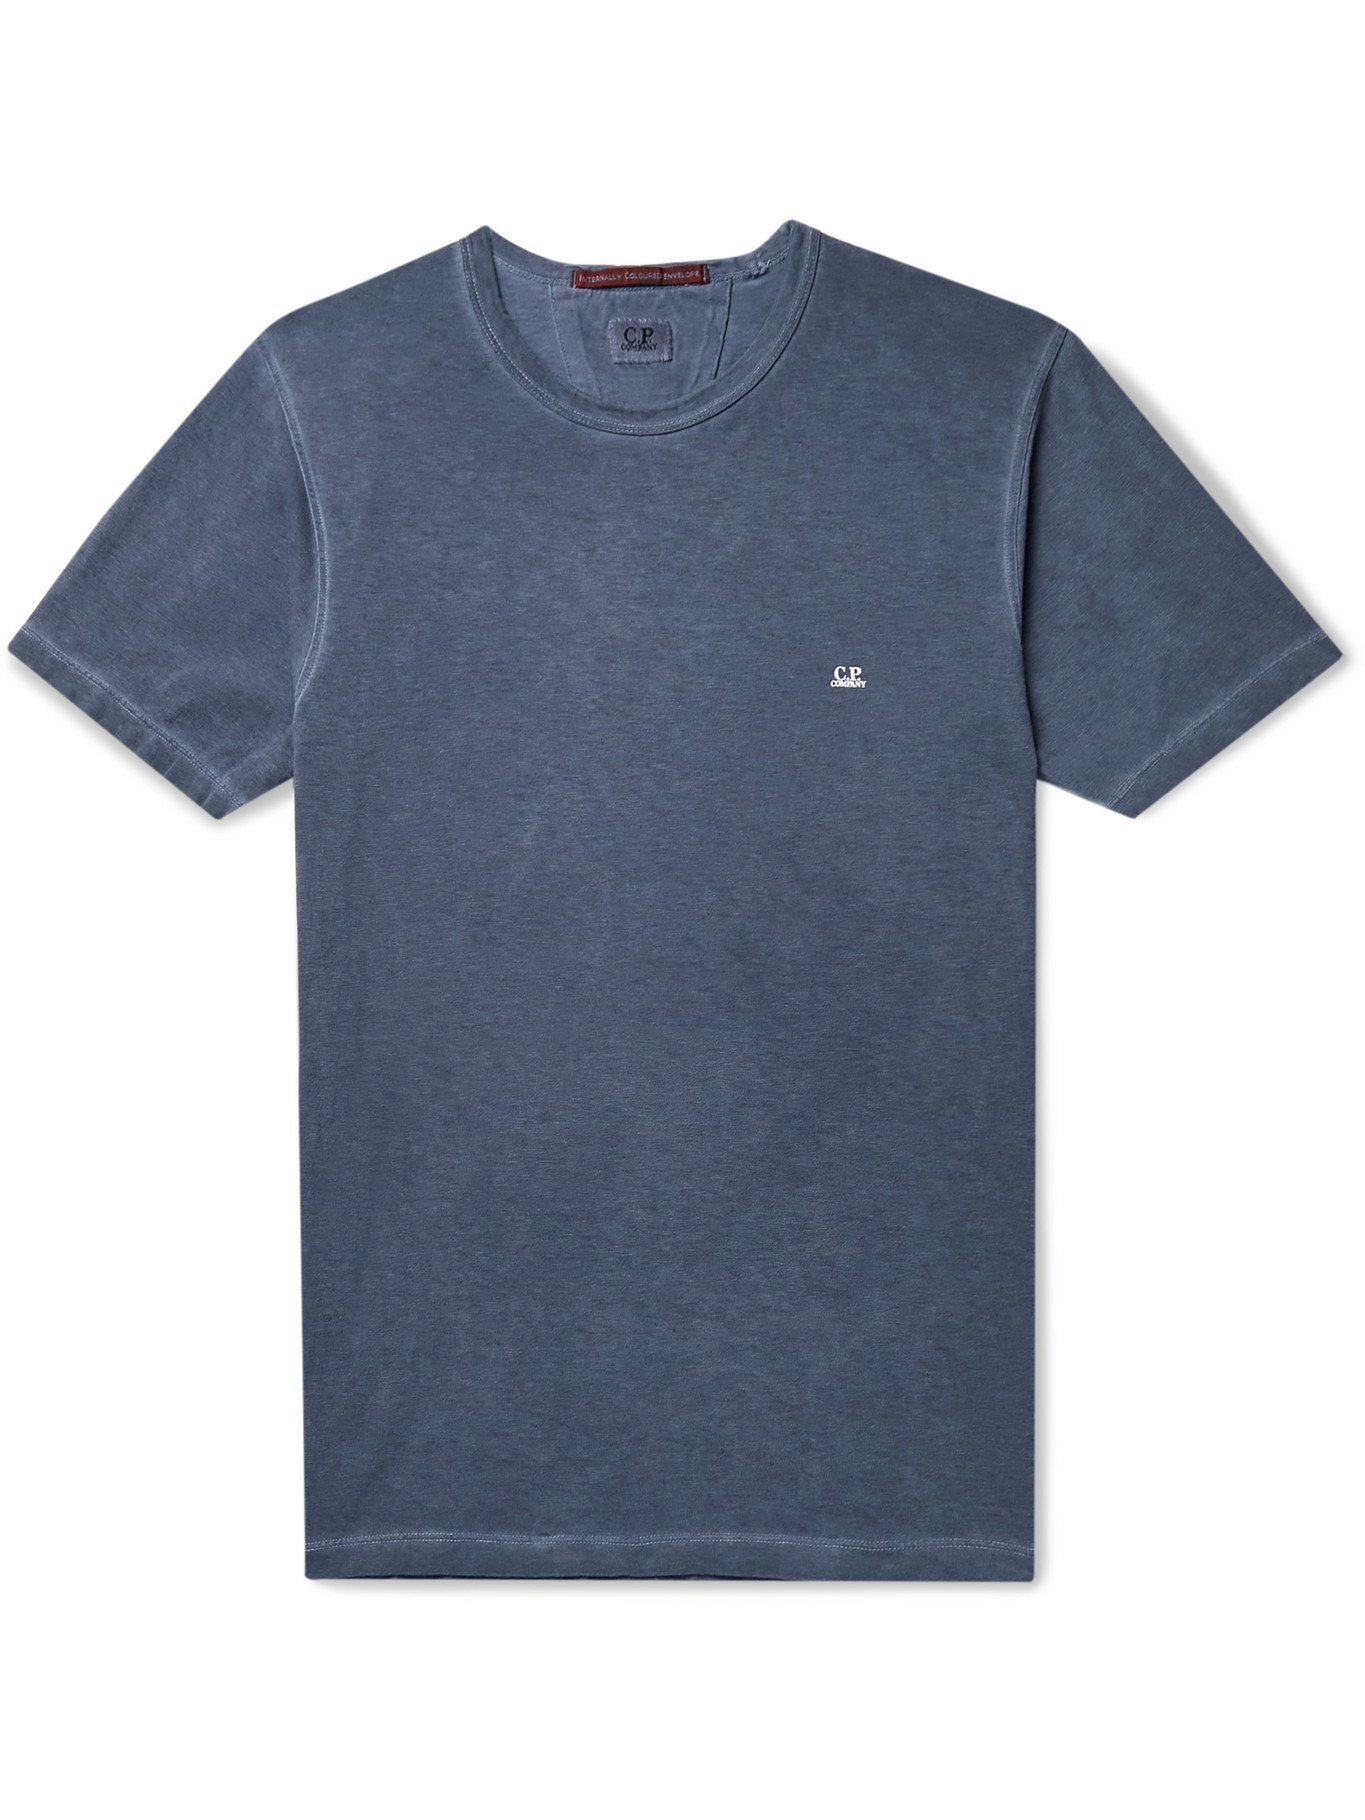 Photo: C.P. COMPANY - I.C.E. Garment-Dyed Cotton-Jersey T-Shirt - Blue - S